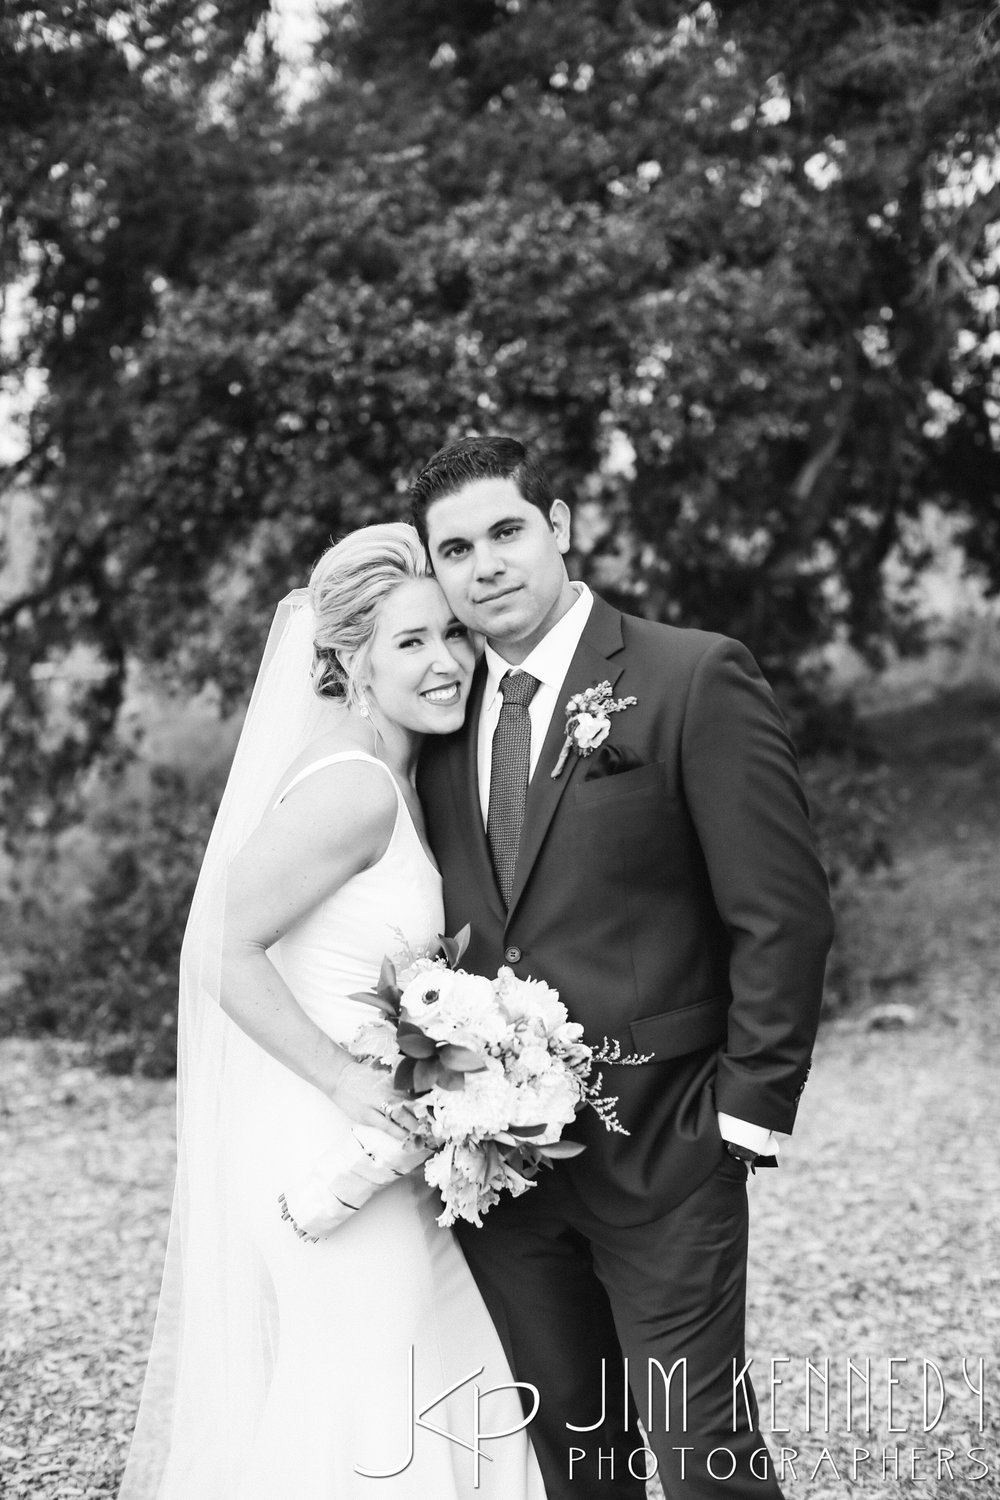 jim_kennedy_photographers_highland_springs_wedding_caitlyn_0147.jpg